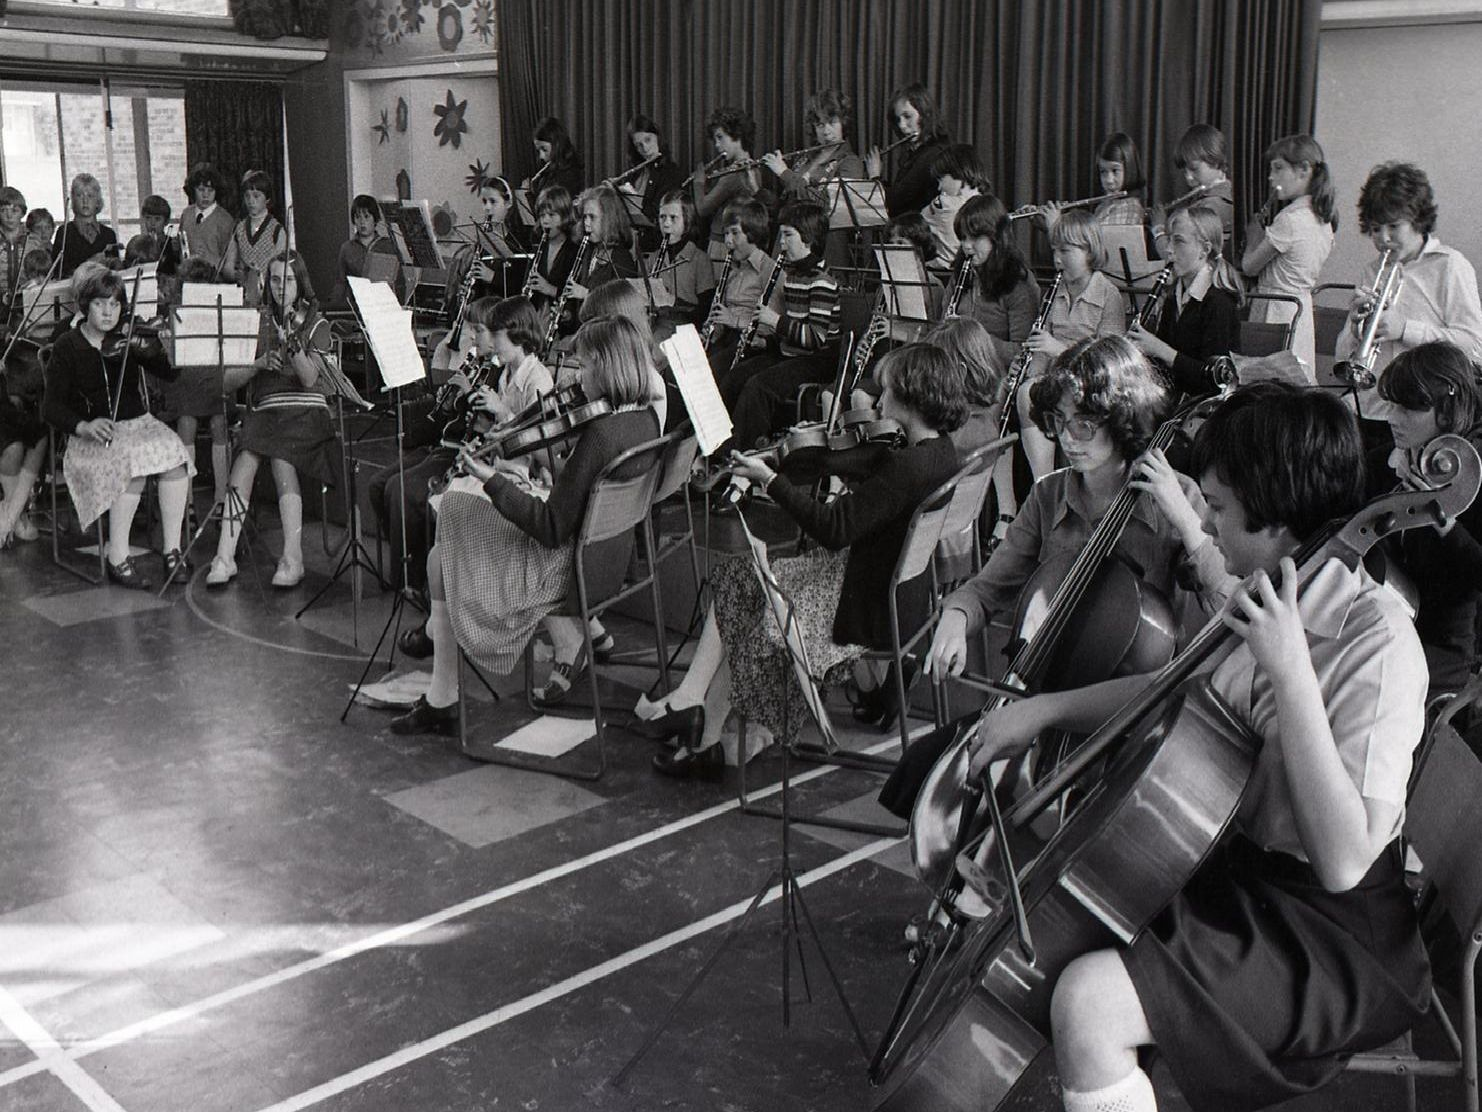 The junior maestros at Leyland Music Centre showed off their skills in an end-of-year concert in front of a packed audience at Broadfield School, Haig Avenue, Leyland. Pictured above, the whole orchestra warms up